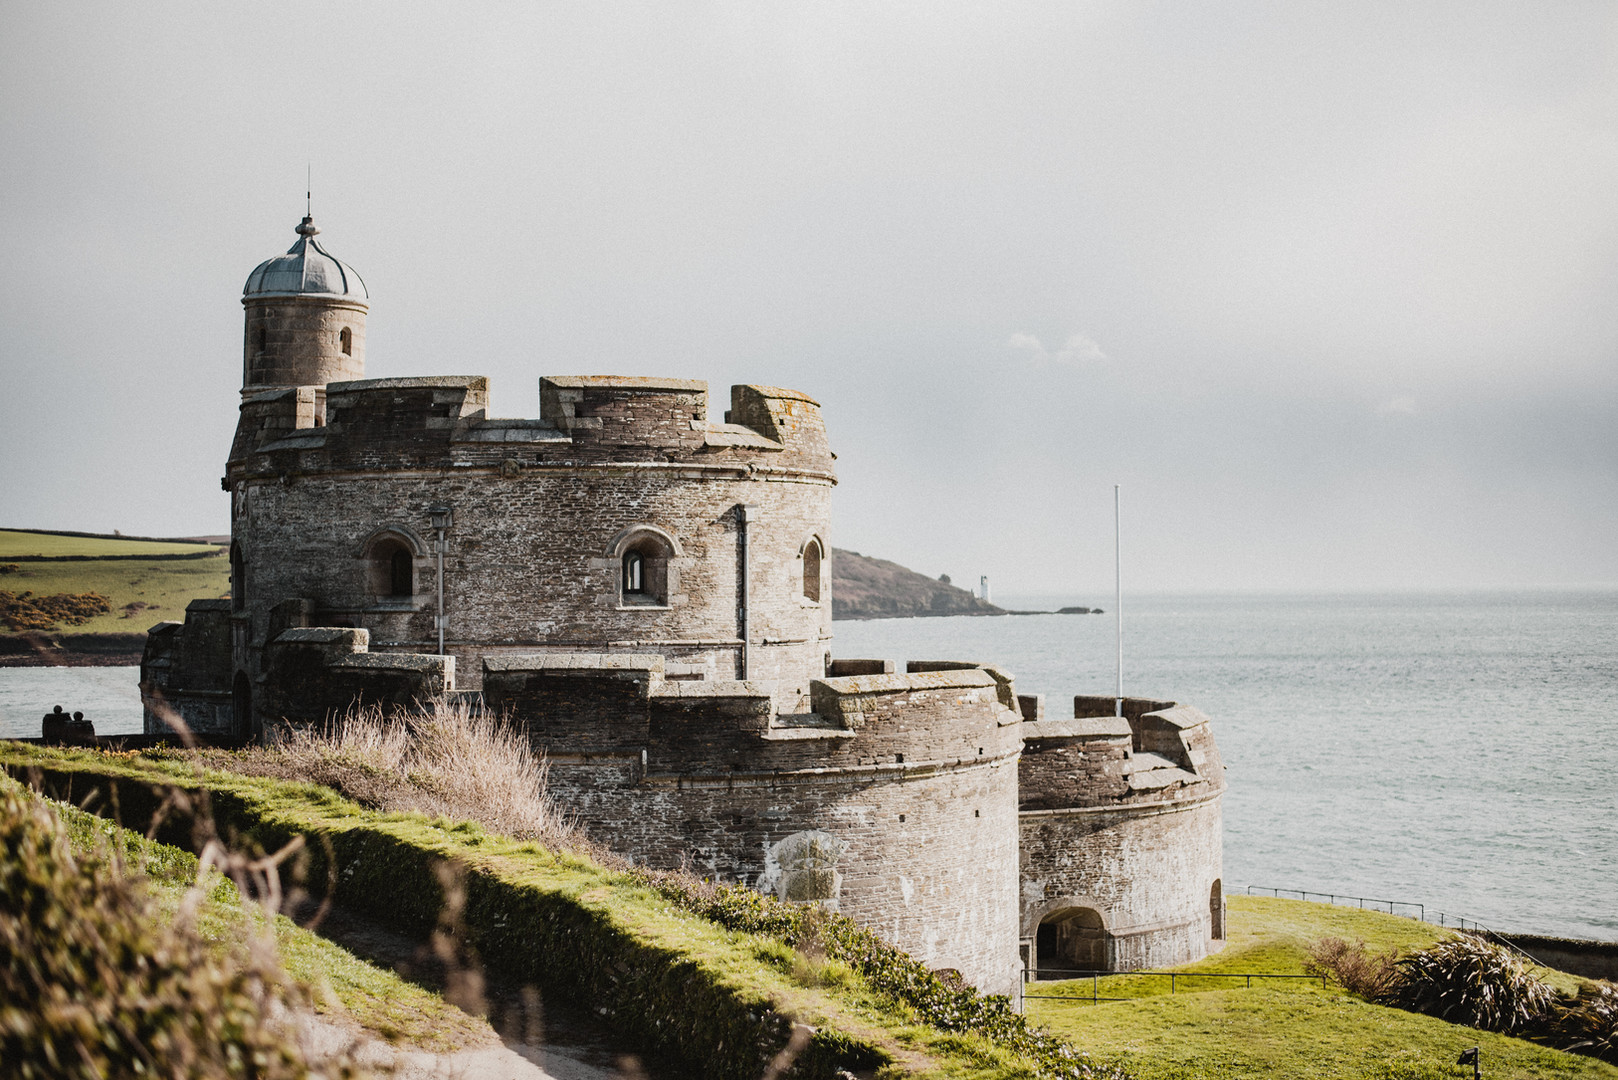 St Mawes Castle has stood on the coast of England since the mid-1500s, when Henry VIII had it built to serve as protection from France and Spain.  Mary Kathryn Carpenter